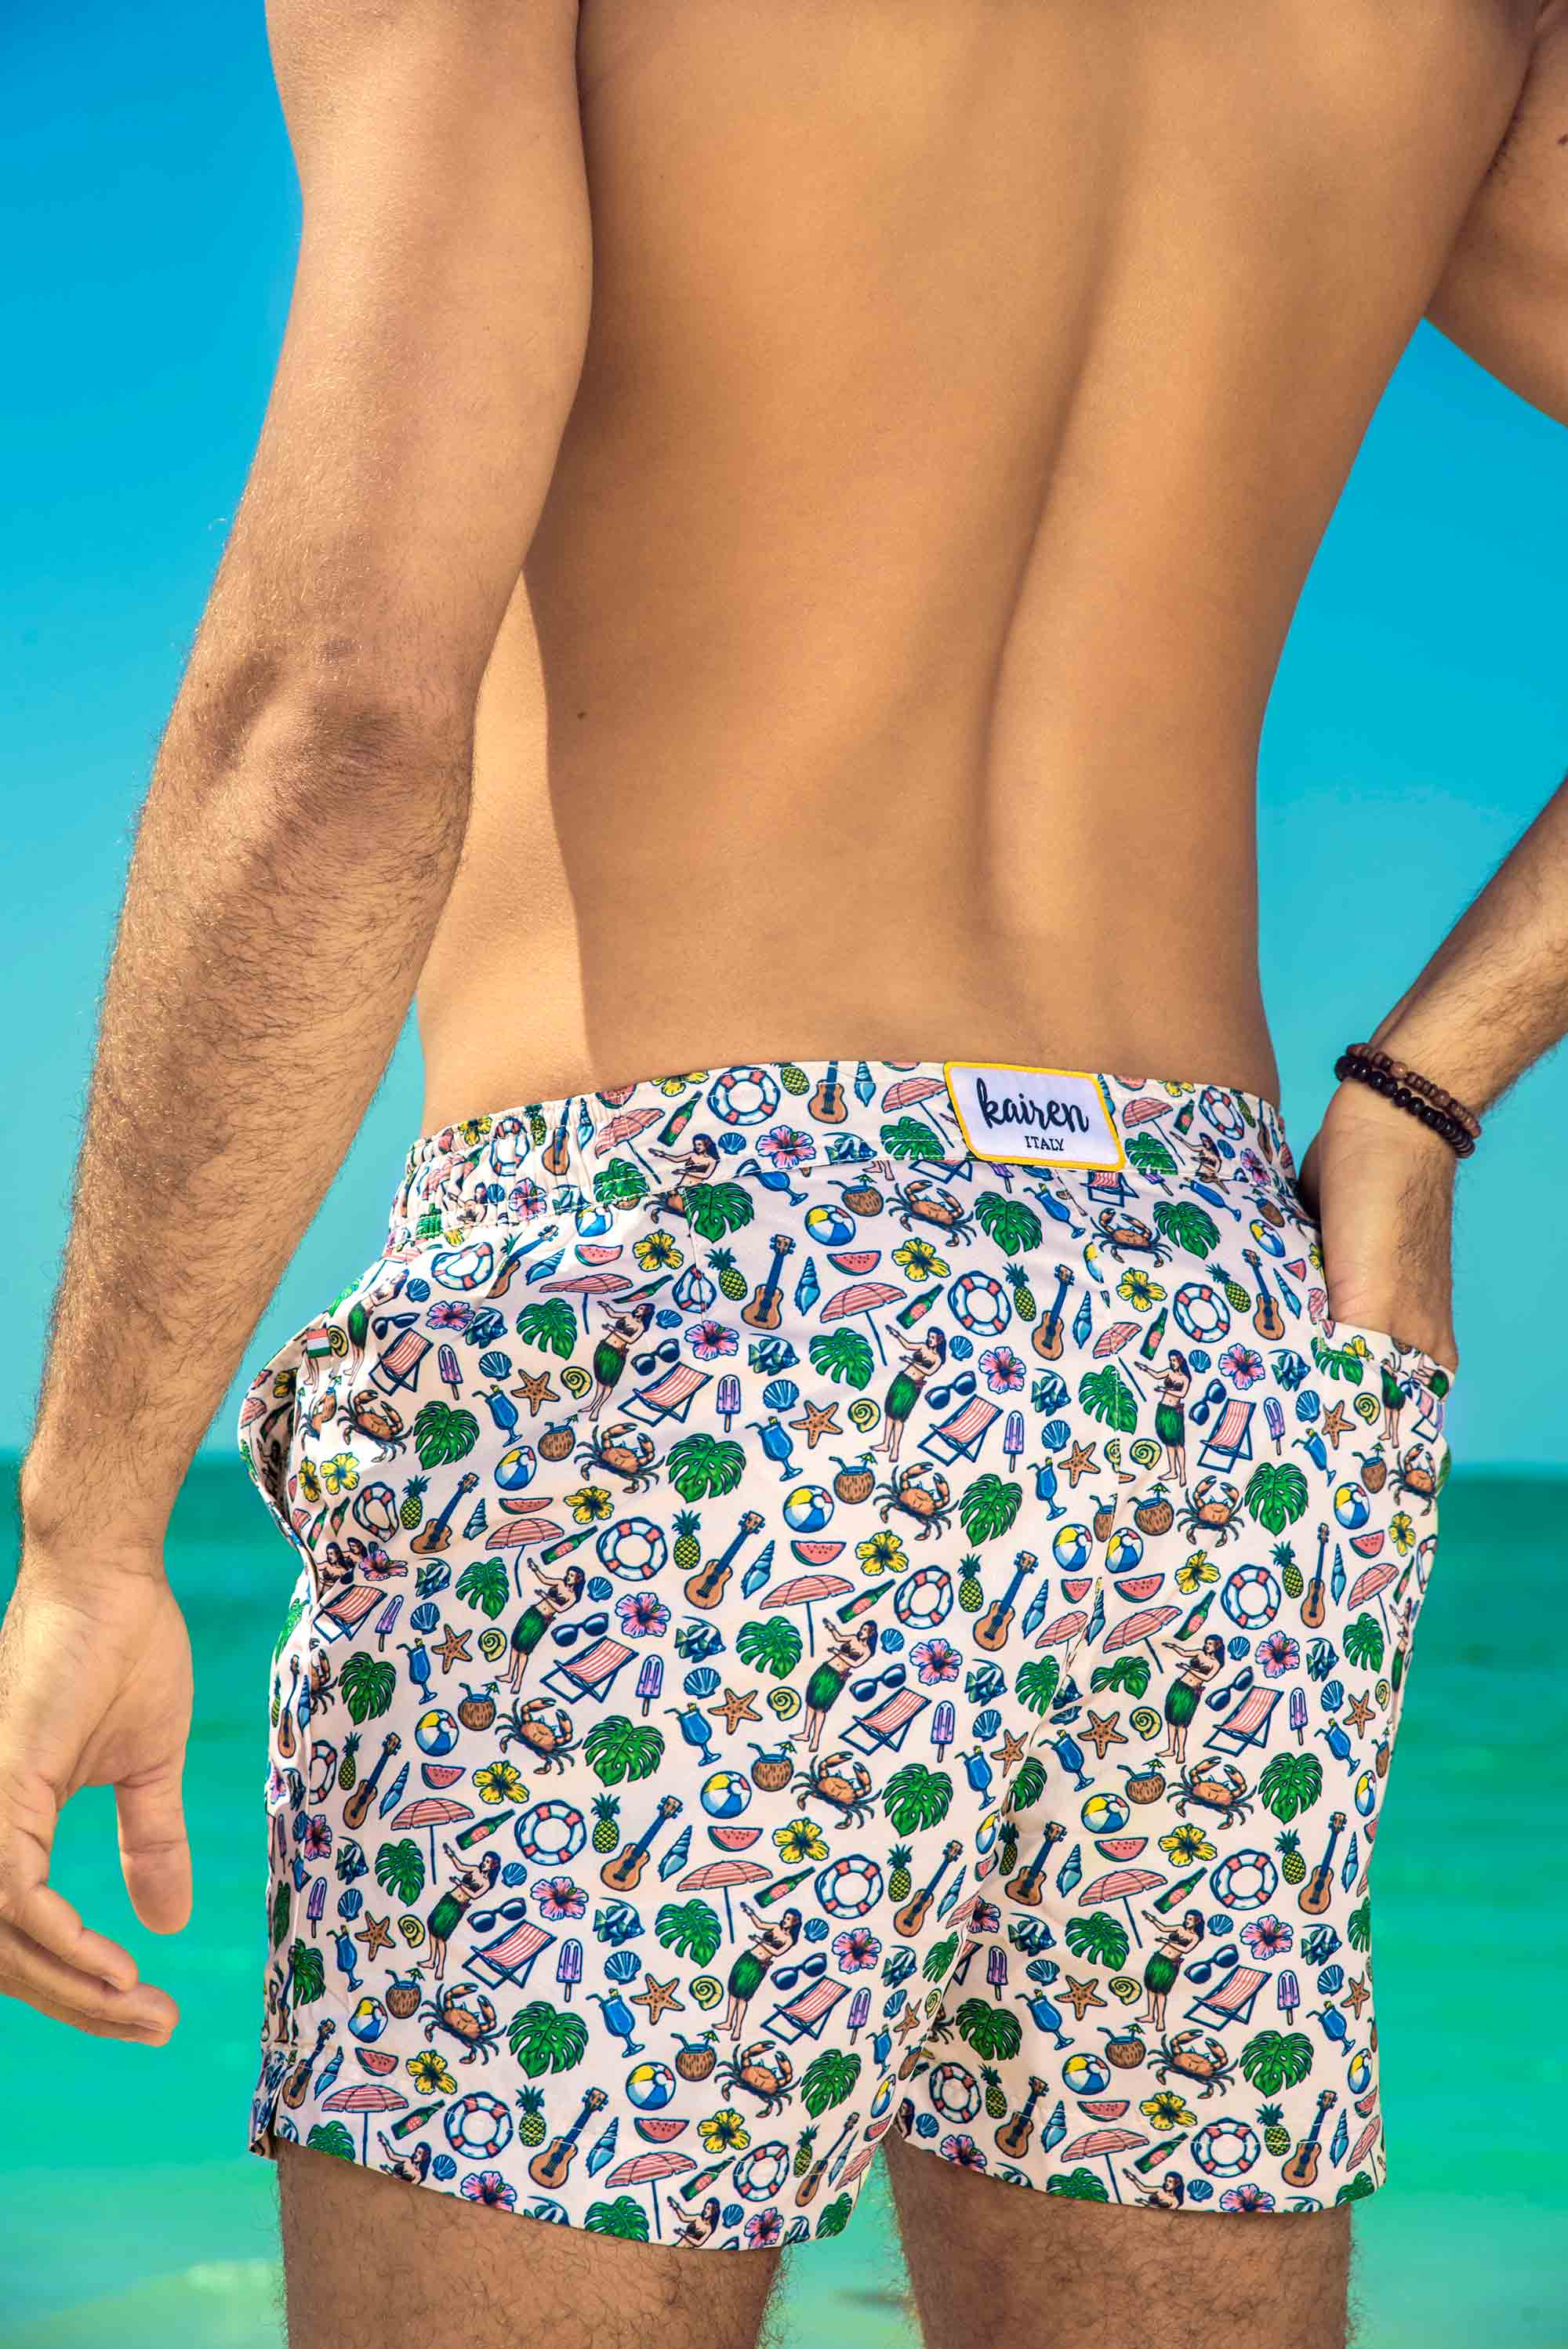 Luxury Swim Trunks - Vintage #Riviera 100% Recycled Plastic - kairenlife